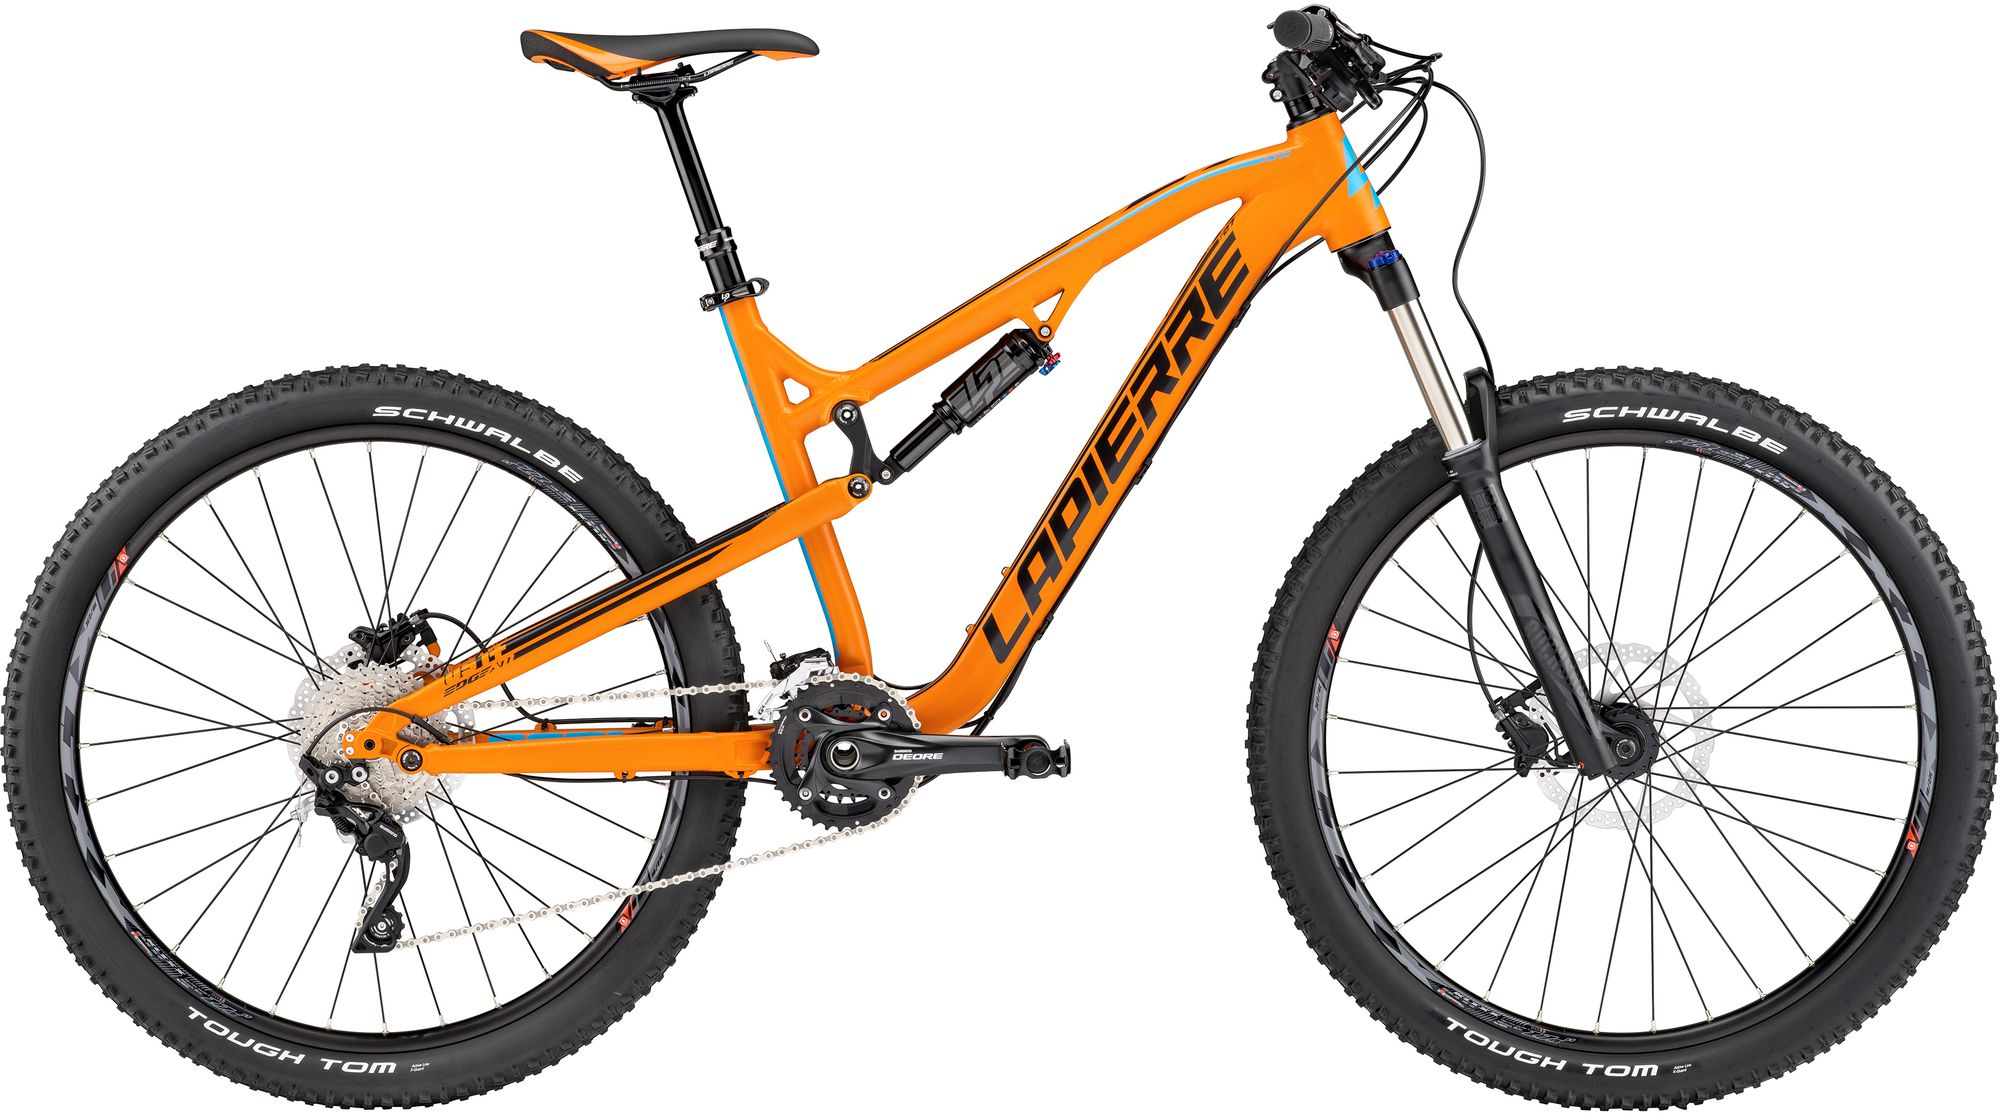 VTT Lapierre Edge AM 527 2017